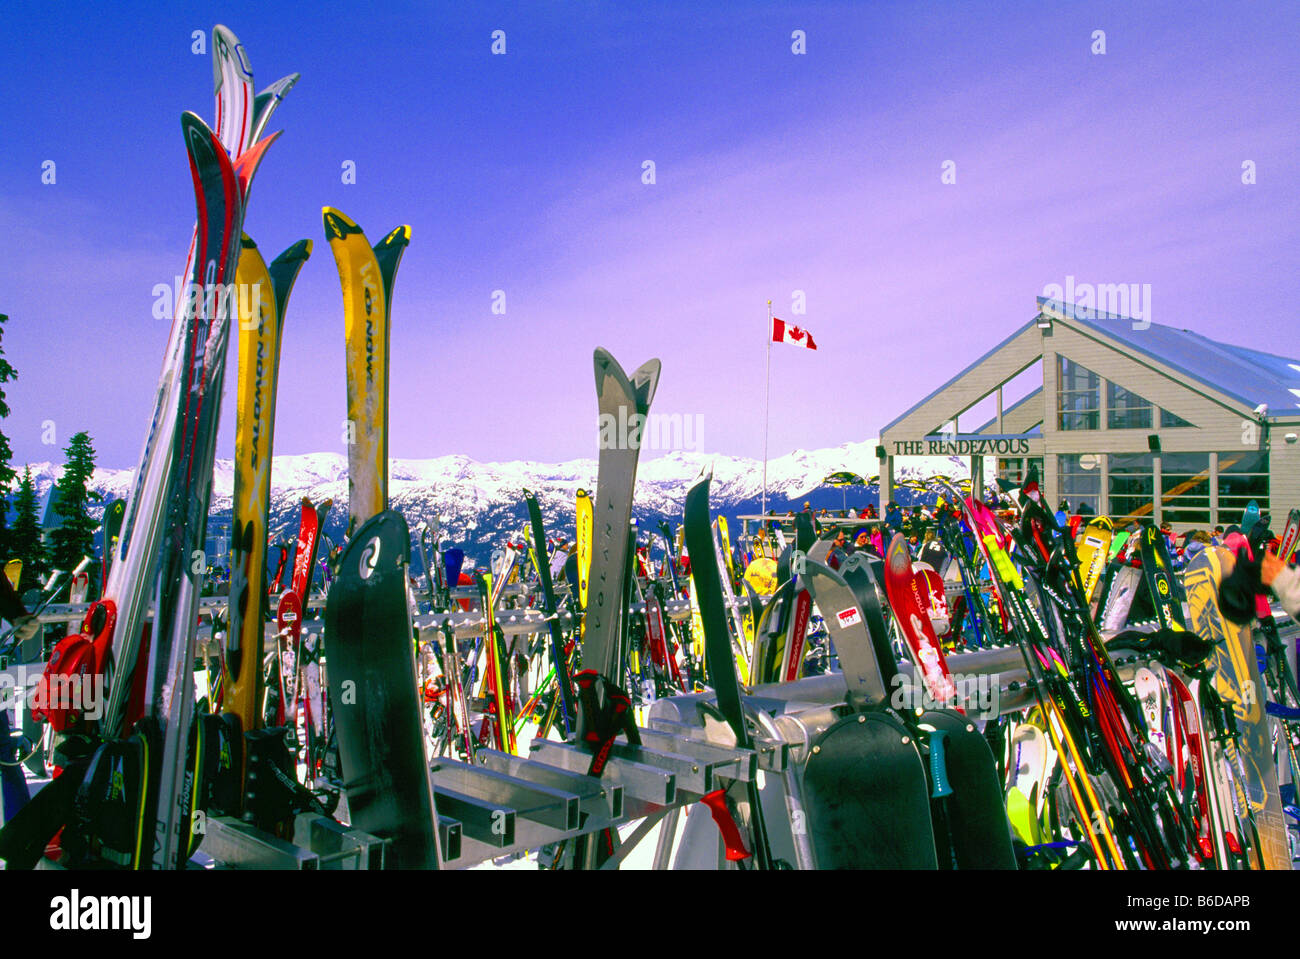 Skis and Snowboards resting against Ski Racks at The Rendezvous Day Lodge on Blackcomb Mountain Whistler British - Stock Image